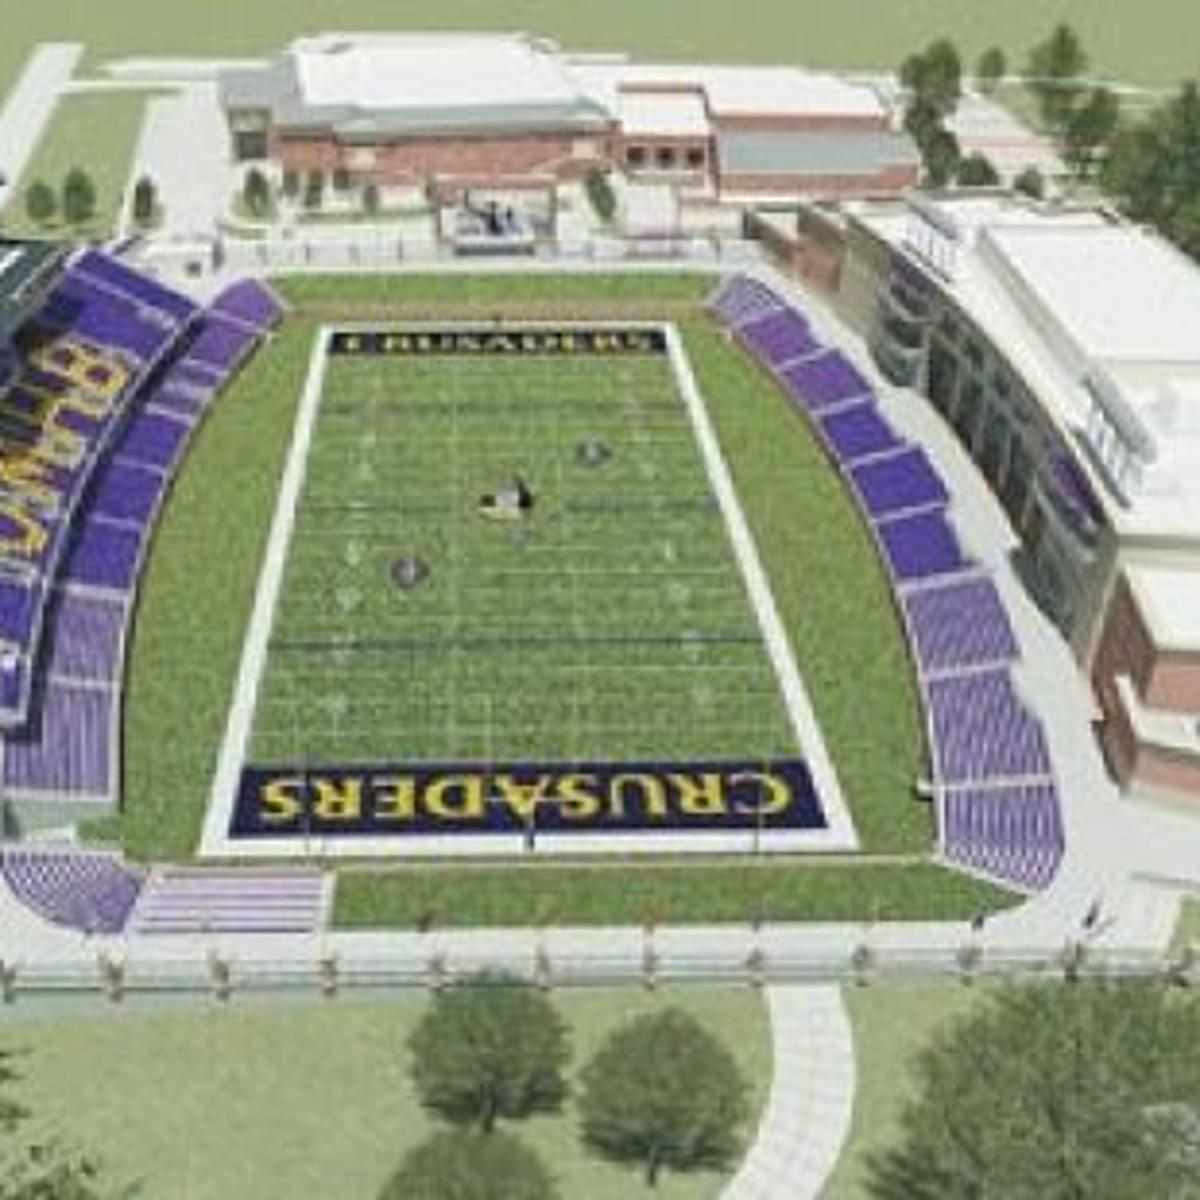 Umhb To Get New Football Stadium Too With Help Of Mclane